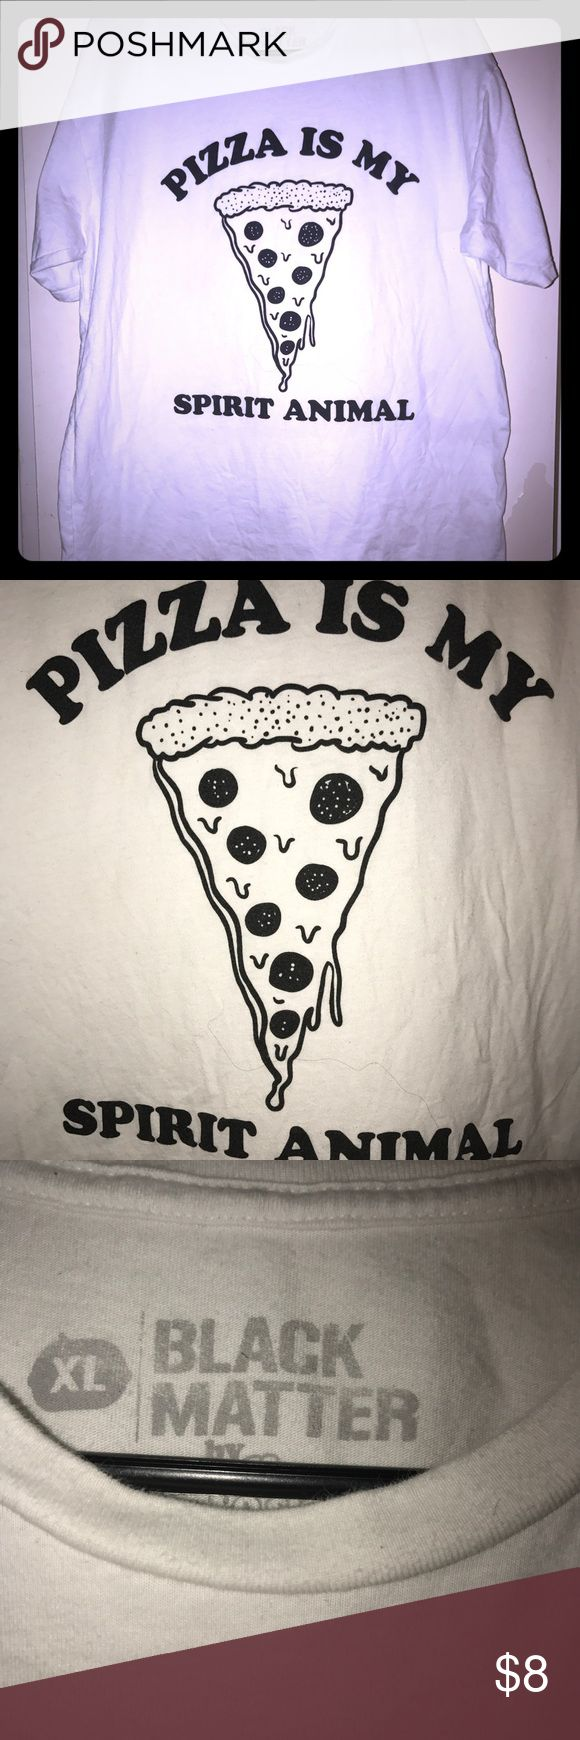 Pizza is my spirit animal men's Tshirt Black matter men's XL Tshirt. Pizza is my spirit animal. No cracking at all on lettering. See pics. Hot Topic Shirts Tees - Short Sleeve